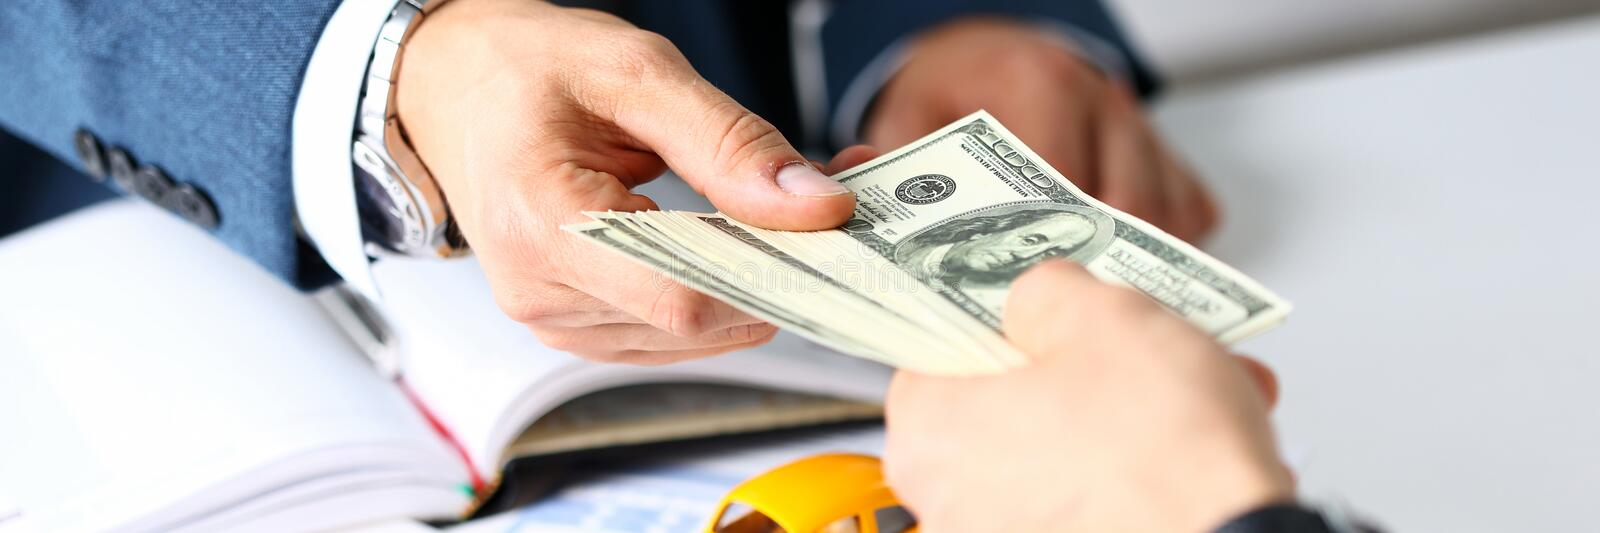 Client arm give pack of hundred dollars bills royalty free stock image